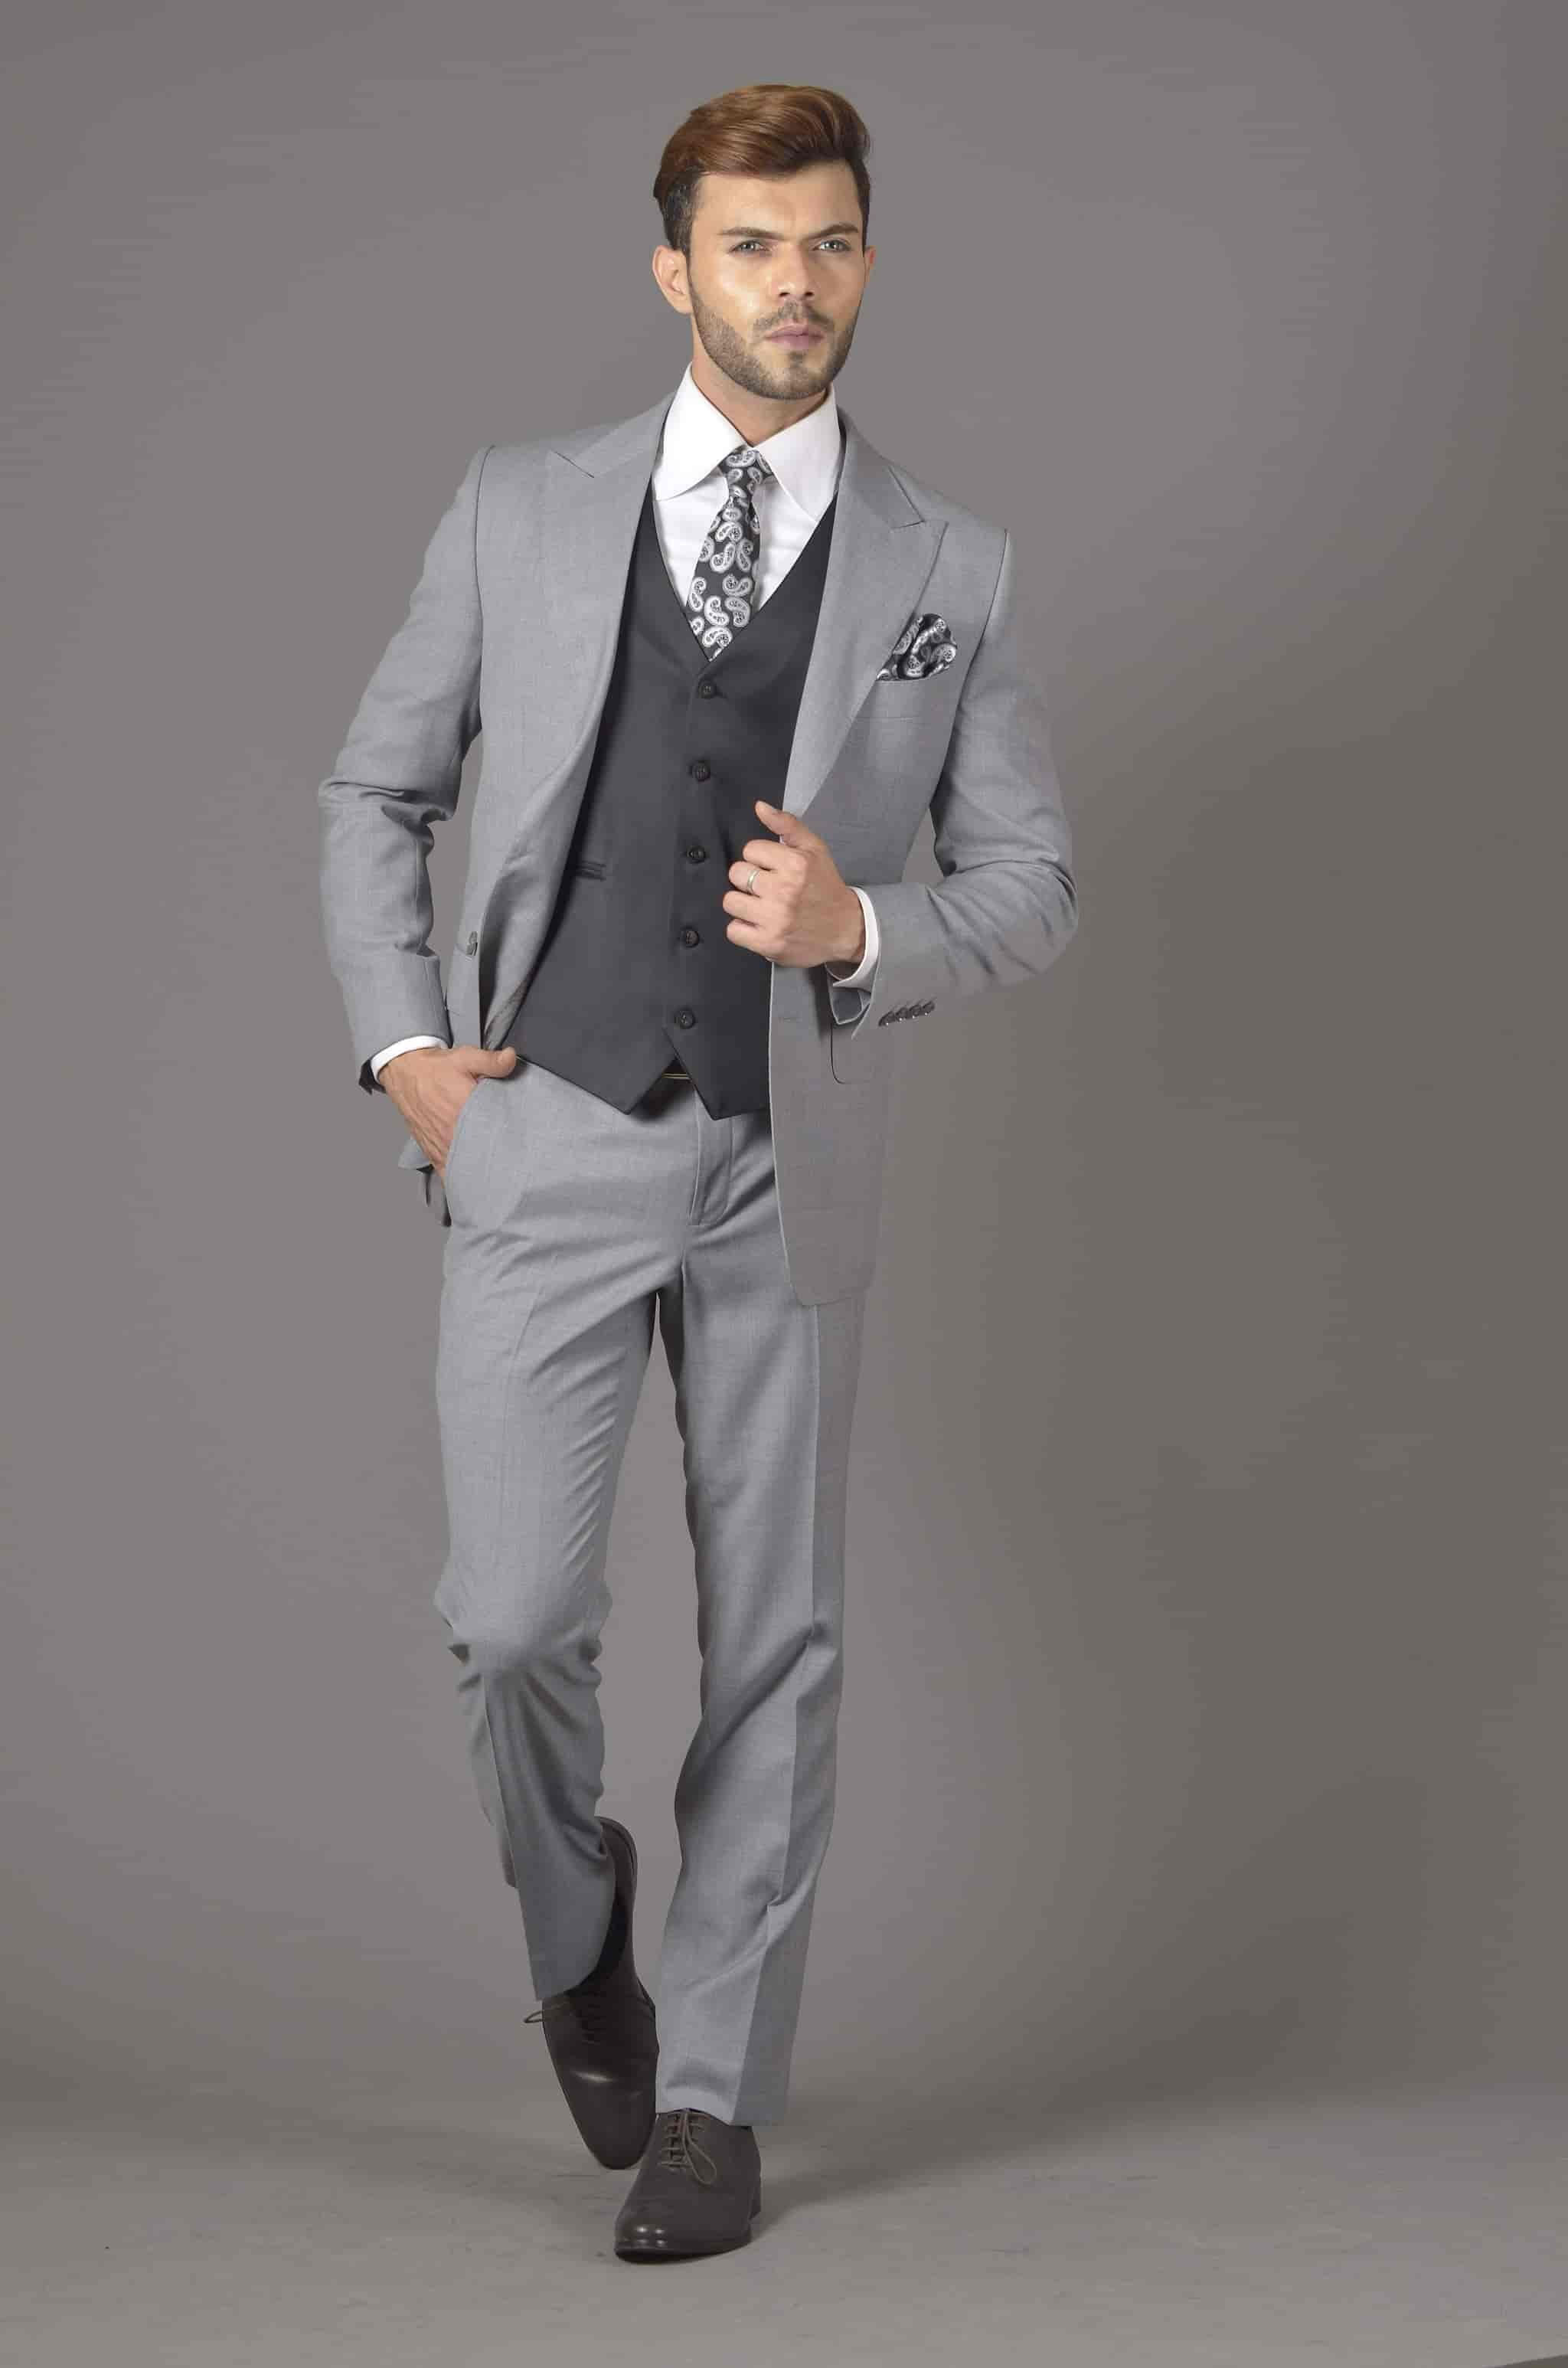 7c644fb9803 ... Men s Formal - Dress Code A Unit Of Yash Klothing Photos